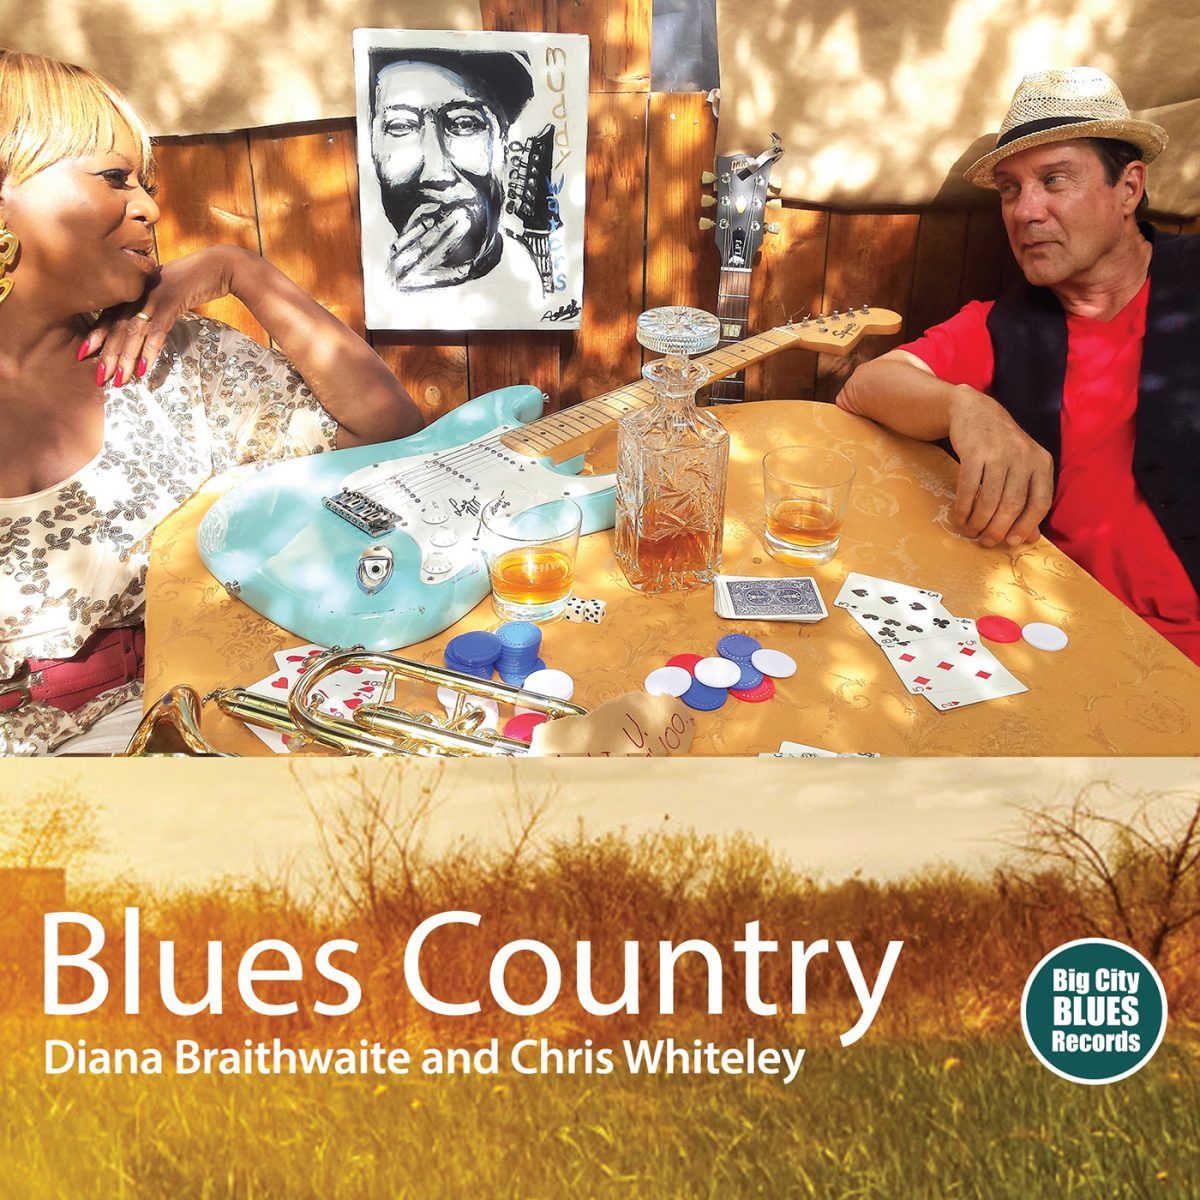 chriswhitelyblues_country_cover